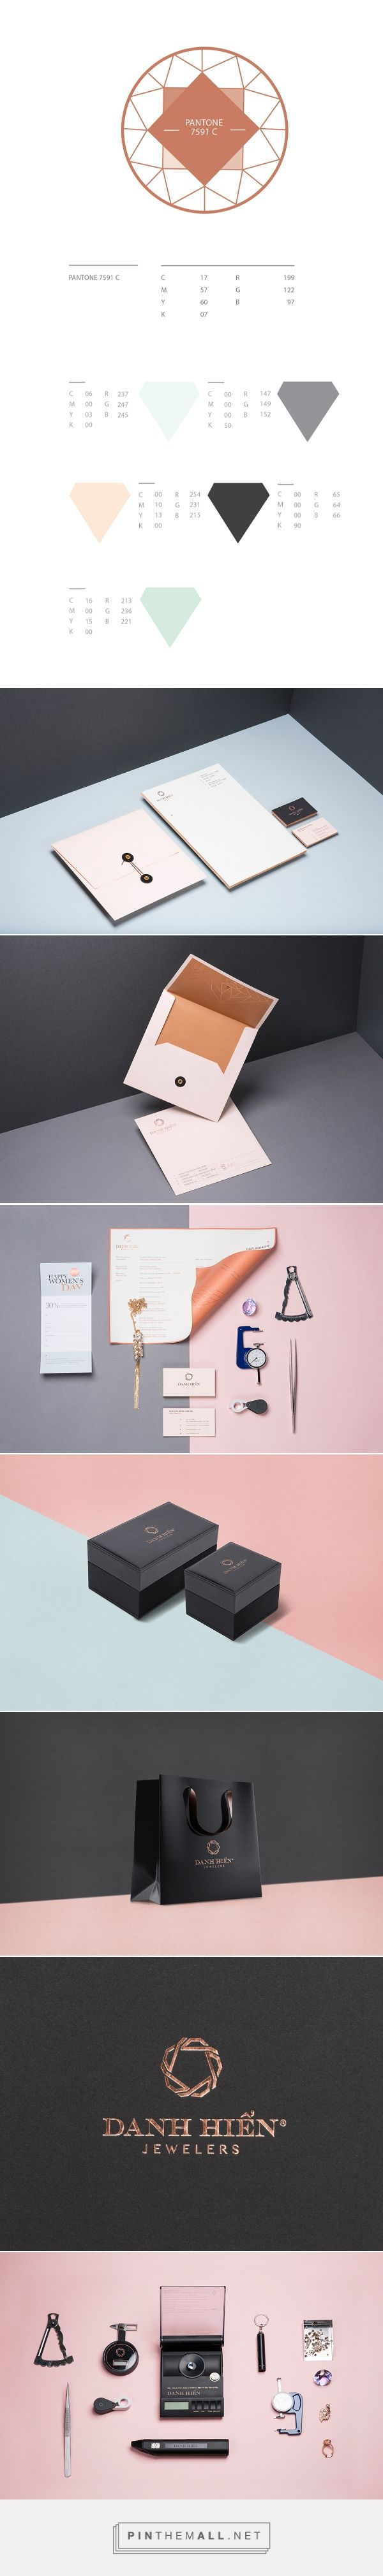 Branding and packaging for DANH HIEN JEWELERS  on Behance curated by Packaging Diva PD. Company specializes in handmade diamond jewelry, working as a family tradition.